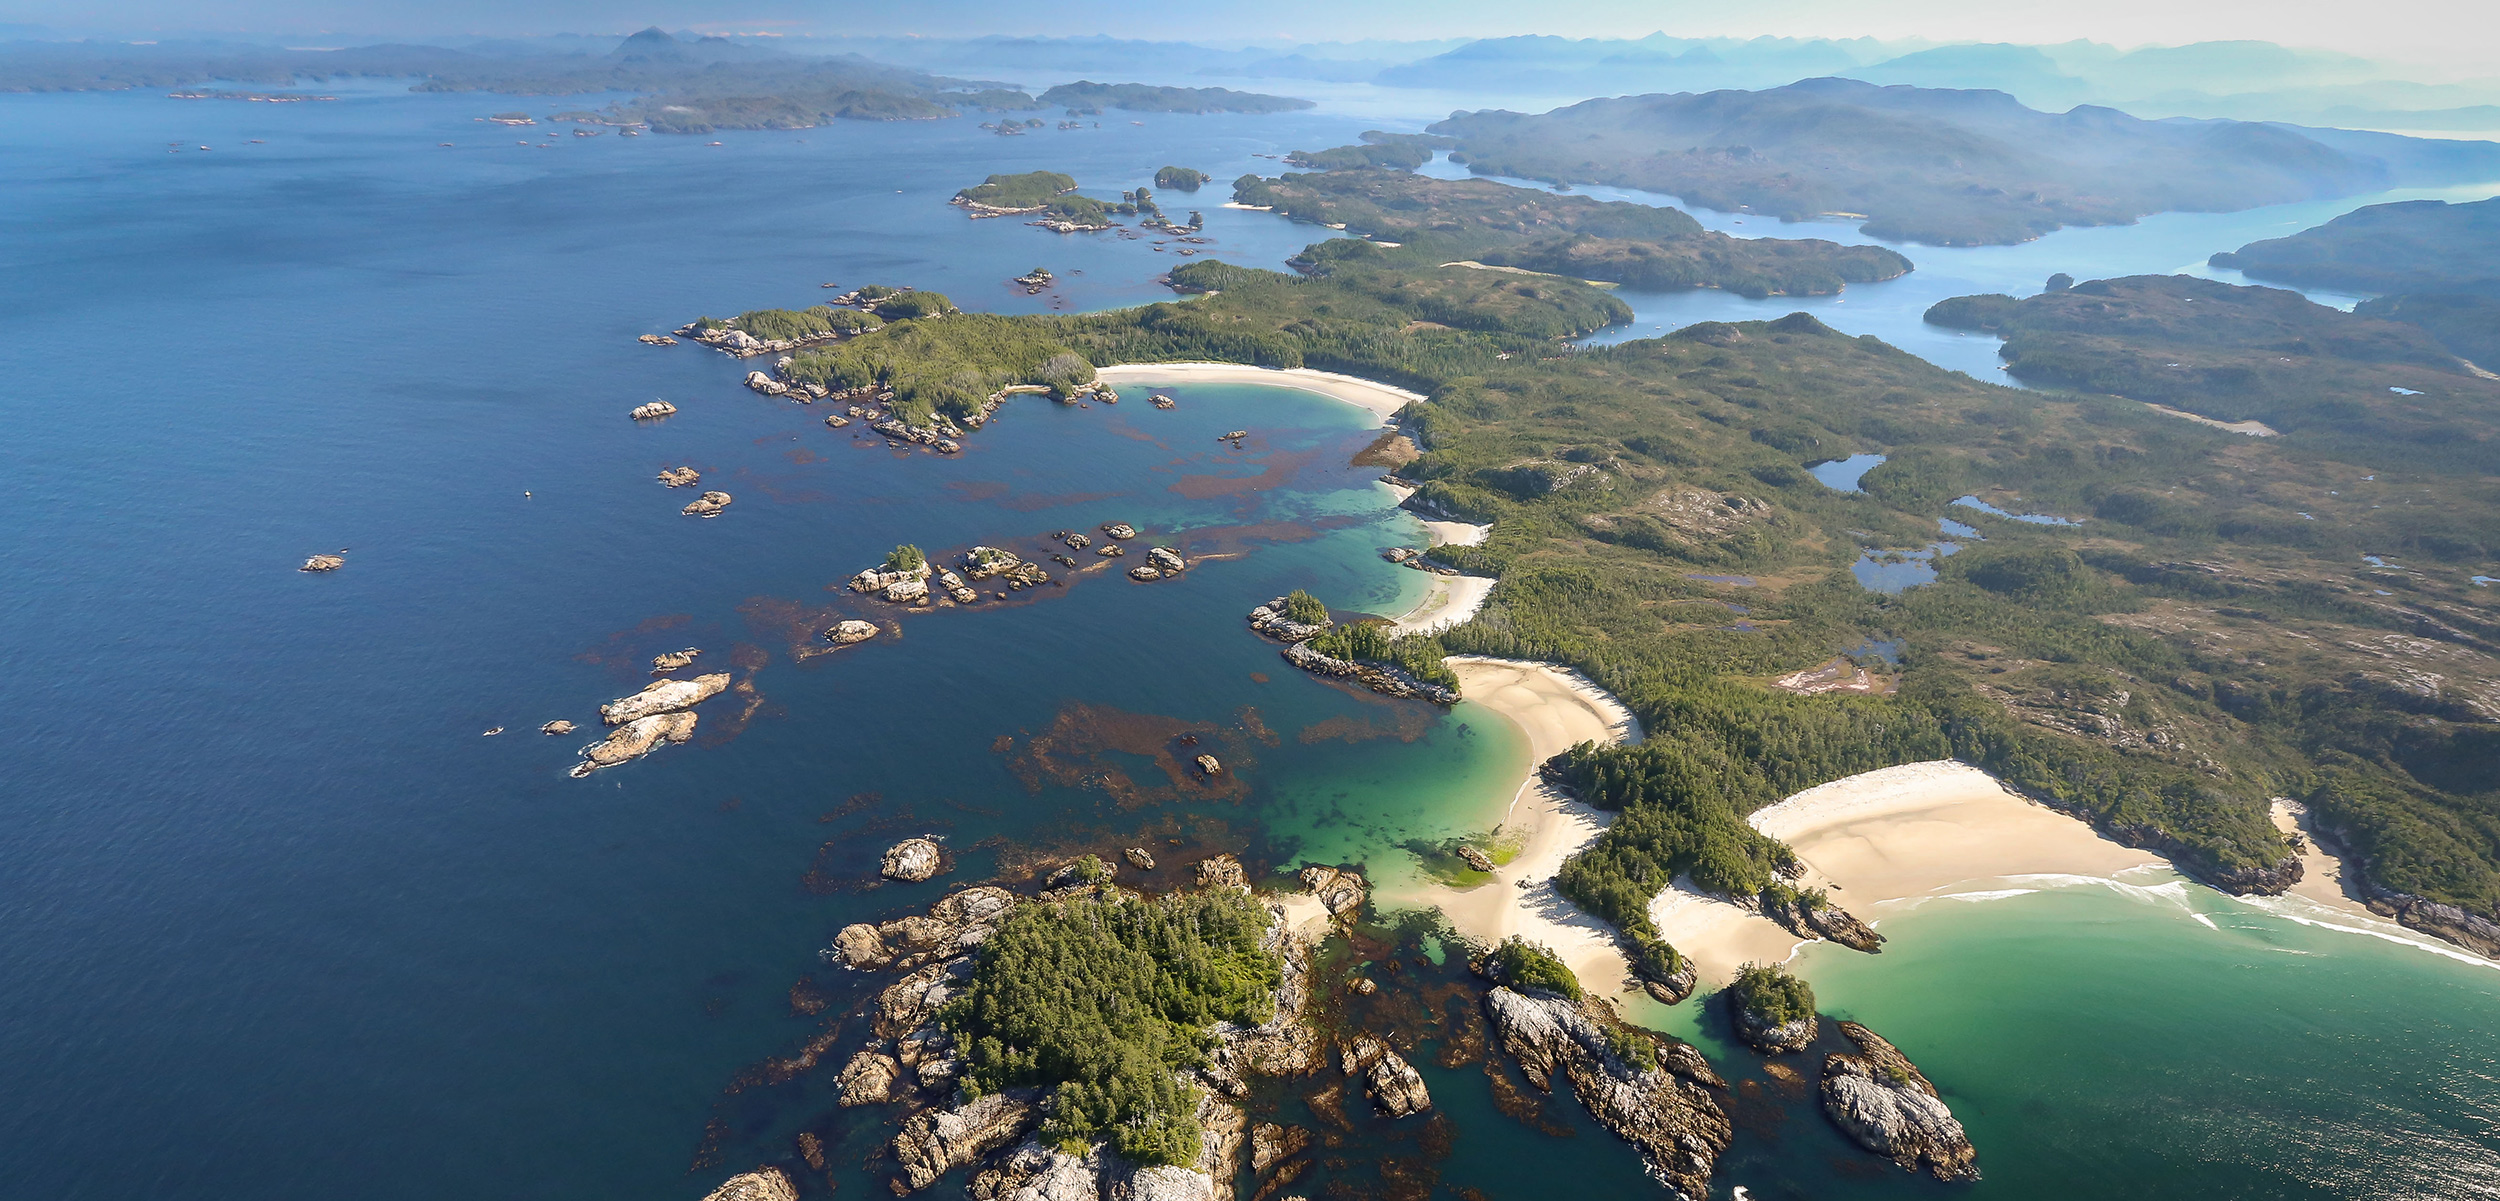 Calvert Island on the Central Coast of British Columbia, Canada